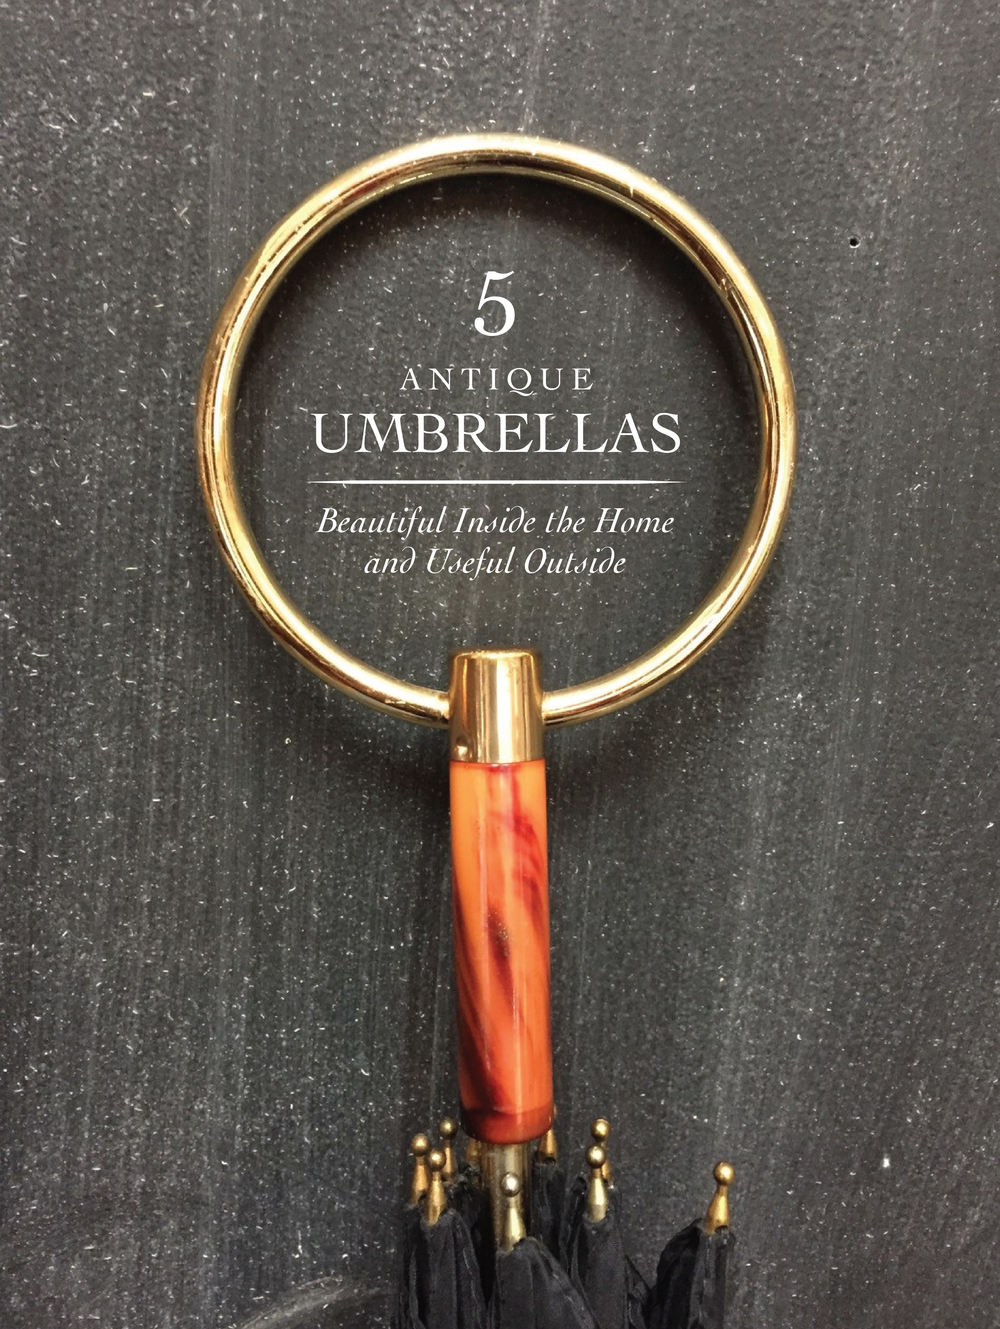 5 antique umbrellas that are beautiful inside the home and useful outside | Keeper & Co. Blog